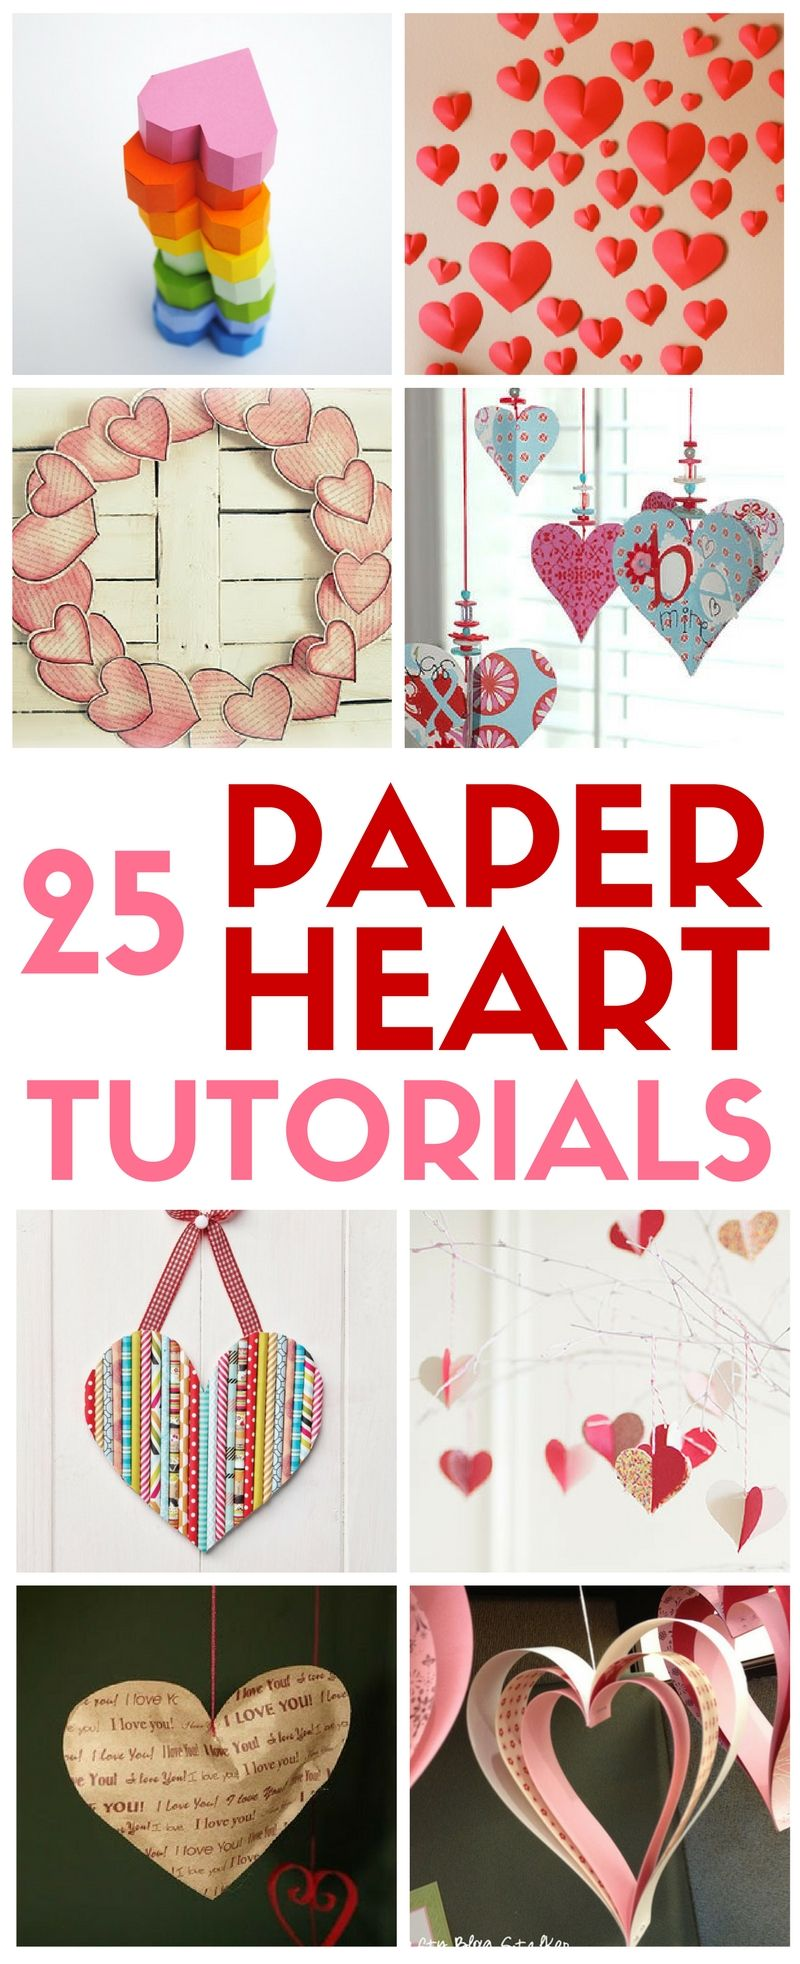 25 easy paper heart projects paper hearts simple diy and tutorials a collection of 25 paper heart projects for valentines day weddings or just because a handmade heart is a simple diy craft tutorial idea jeuxipadfo Choice Image